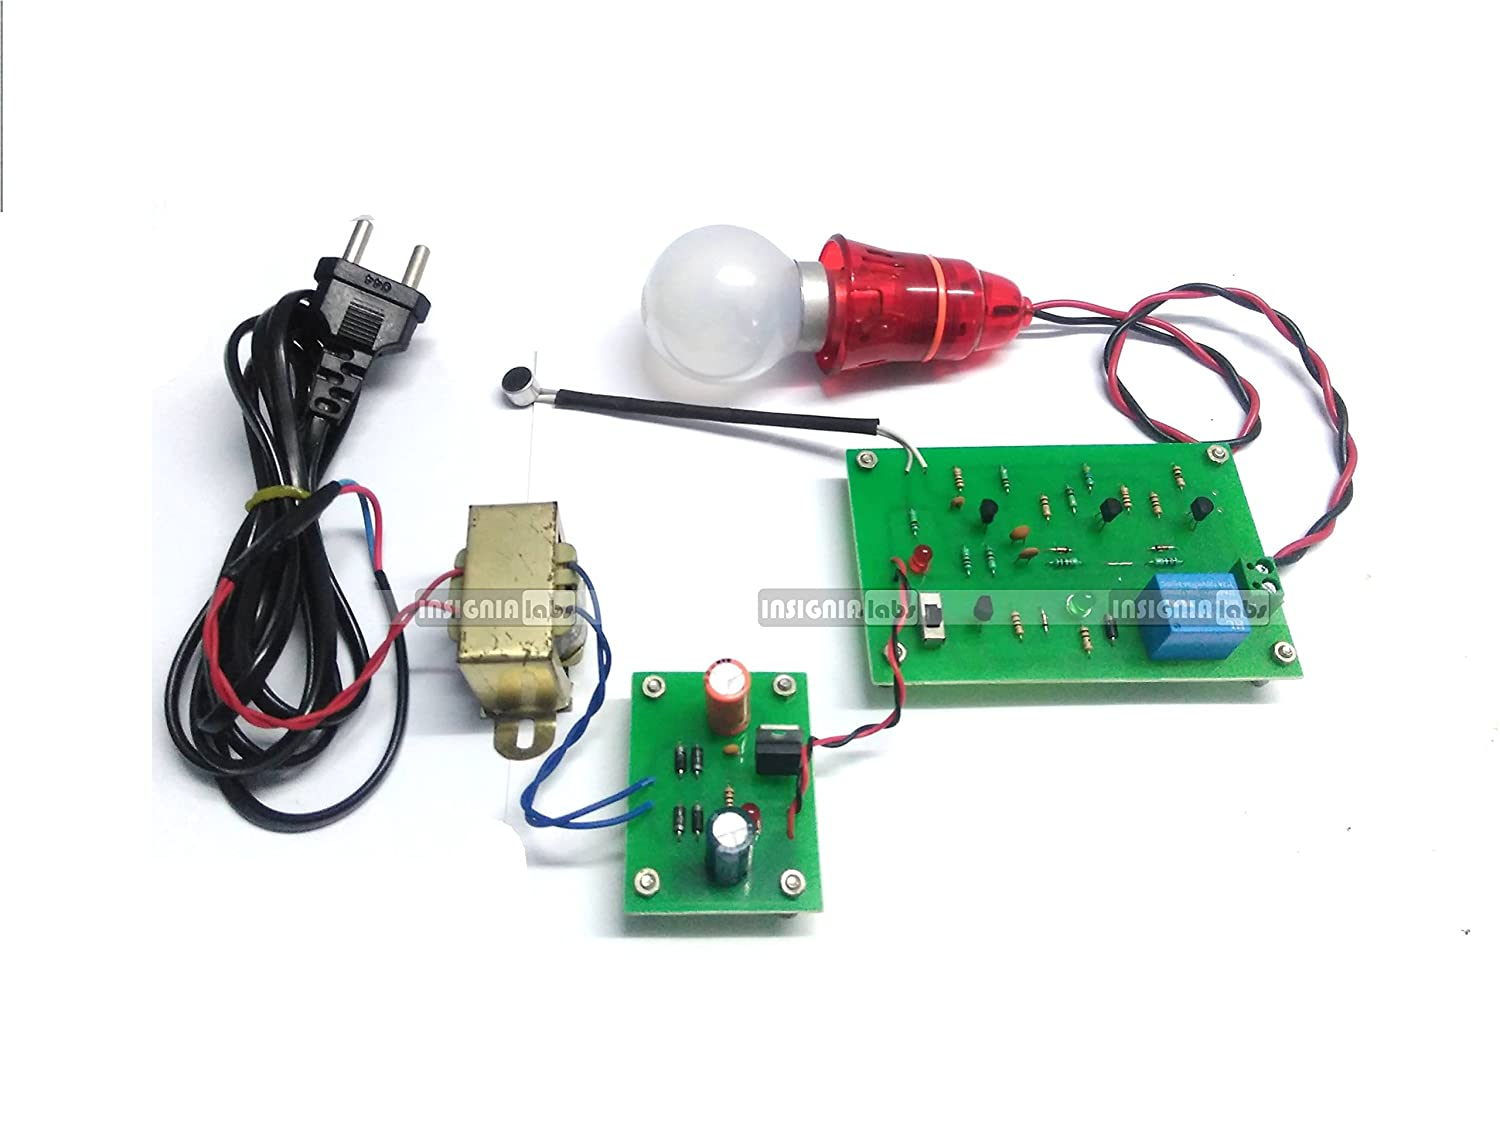 Insignia Labs Clap Switch Based Light Bulb Control Project Kit Circuit Mini With Ac Supply Input Electronic School College Industrial